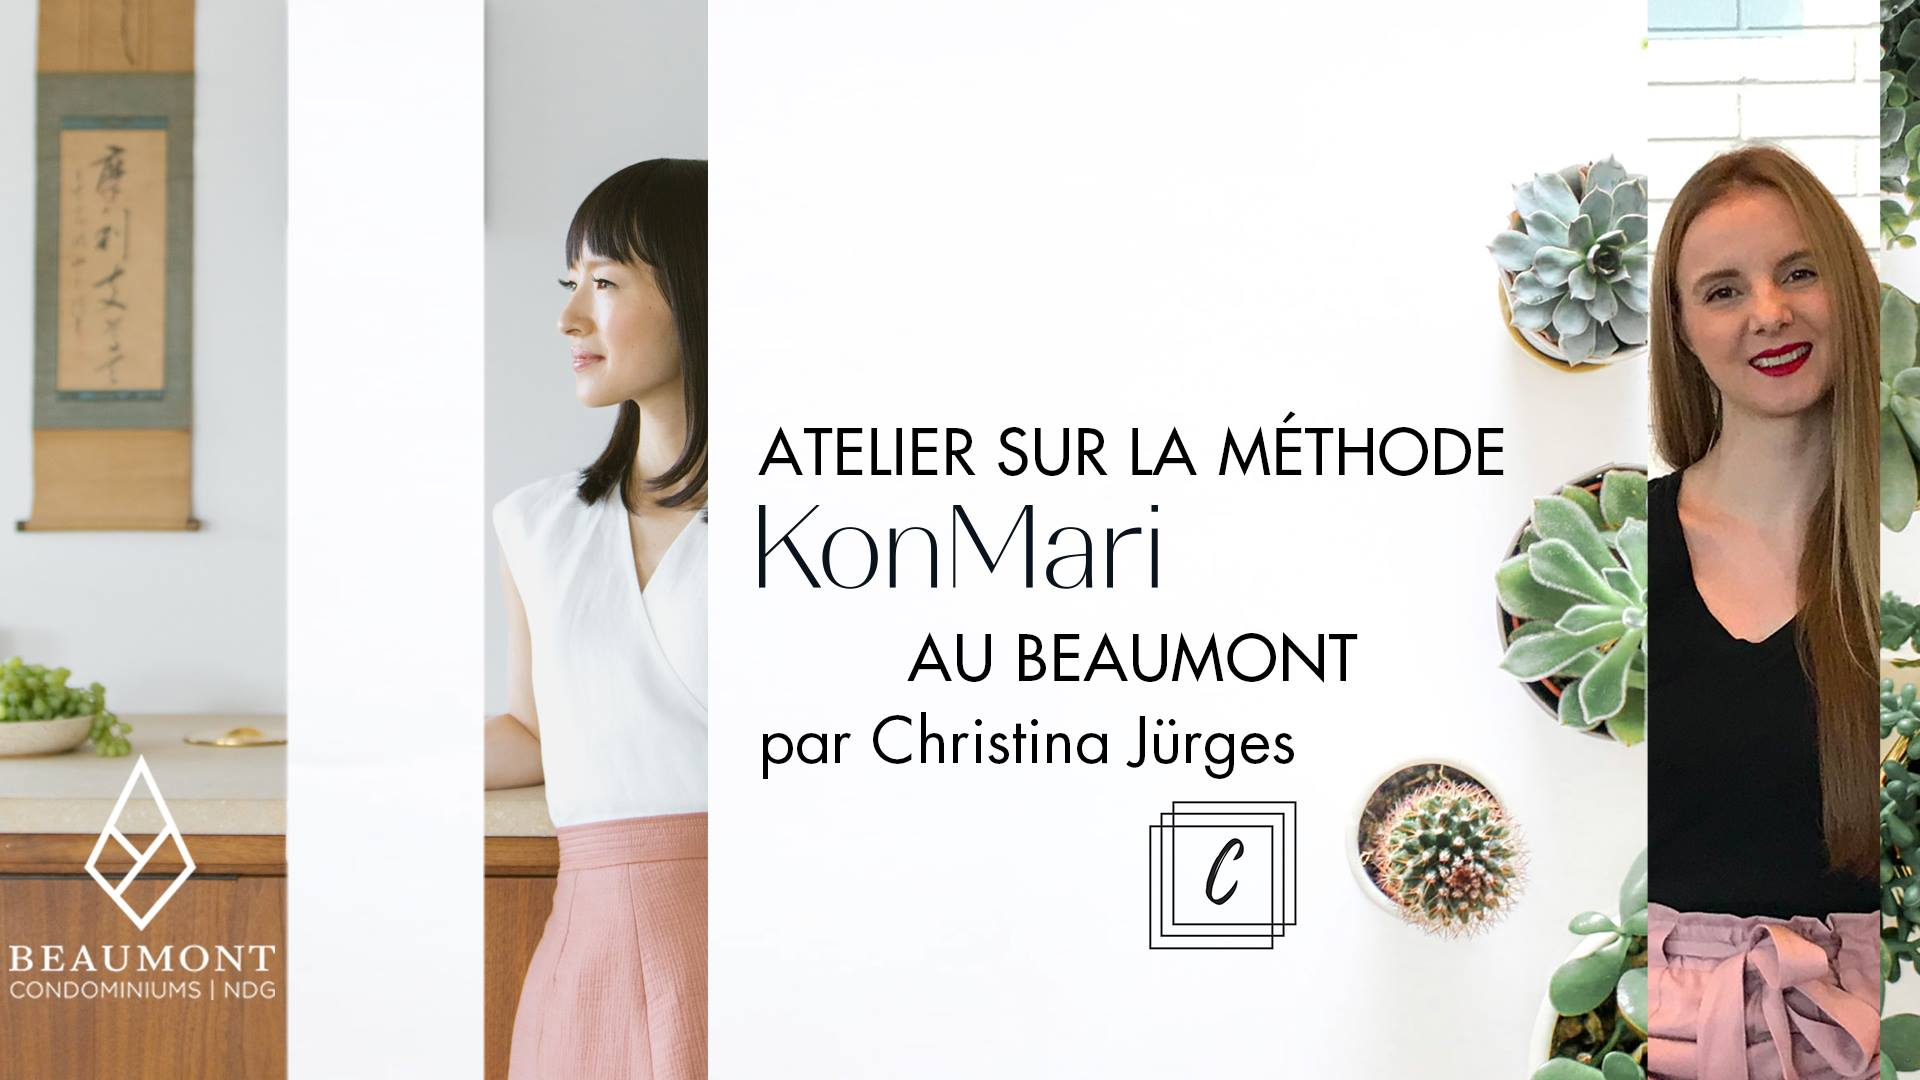 Workshop at DevMcGill (Beaumont) - Workshop Focus: KonMari Method Coaching - how to create a space and life that spark joy